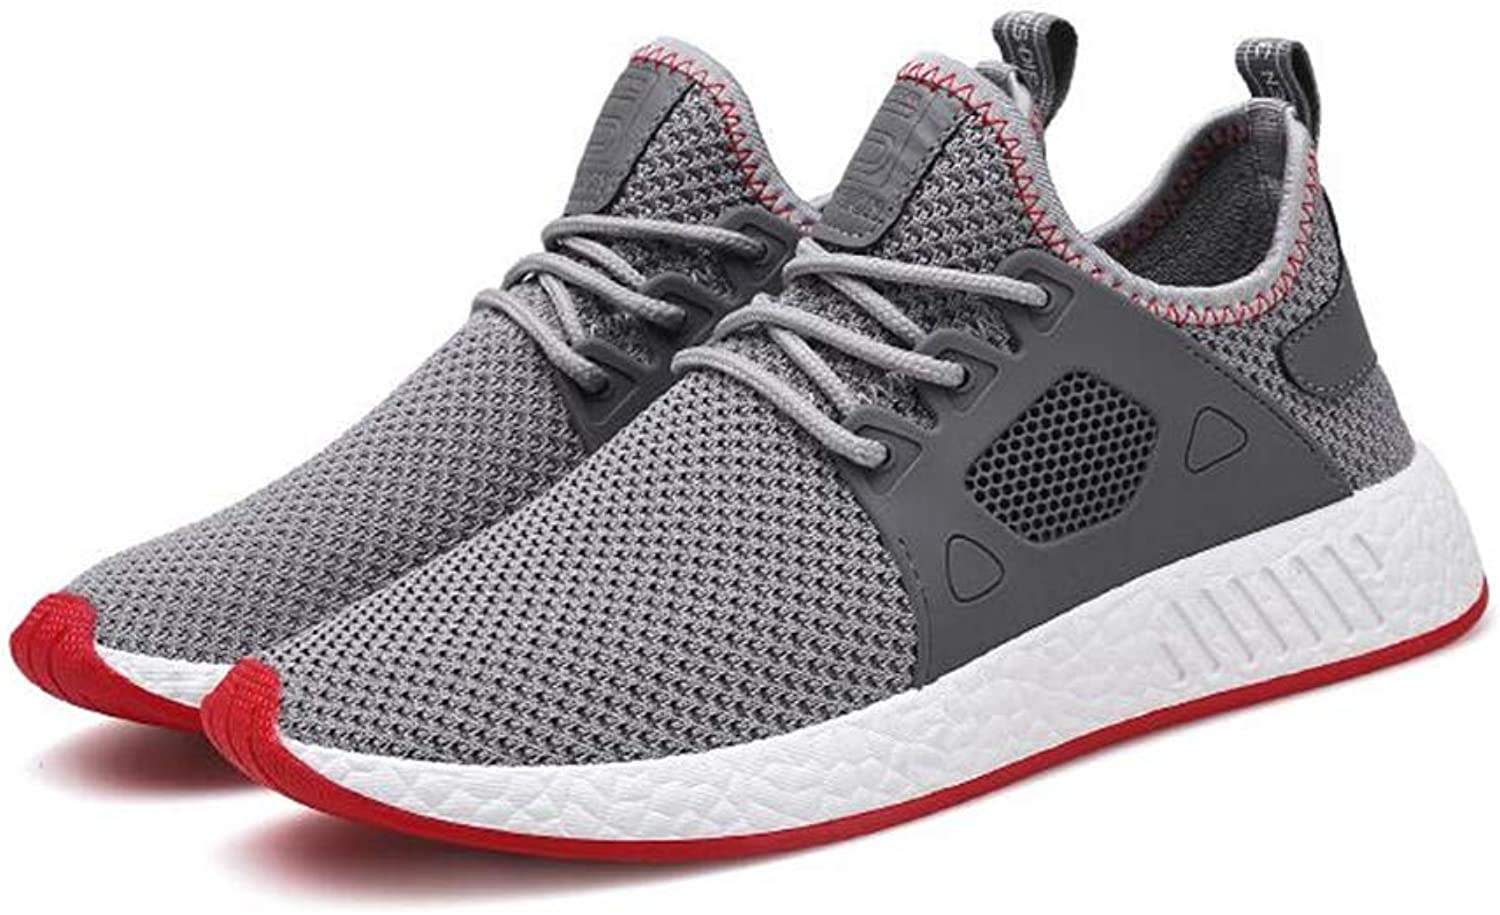 Mens's shoes New Knit Sneakers Spring Fall Breathable Casual shoes Wear Resistant Canvas shoes Running   Hiking Camping   Foot Basket Sports